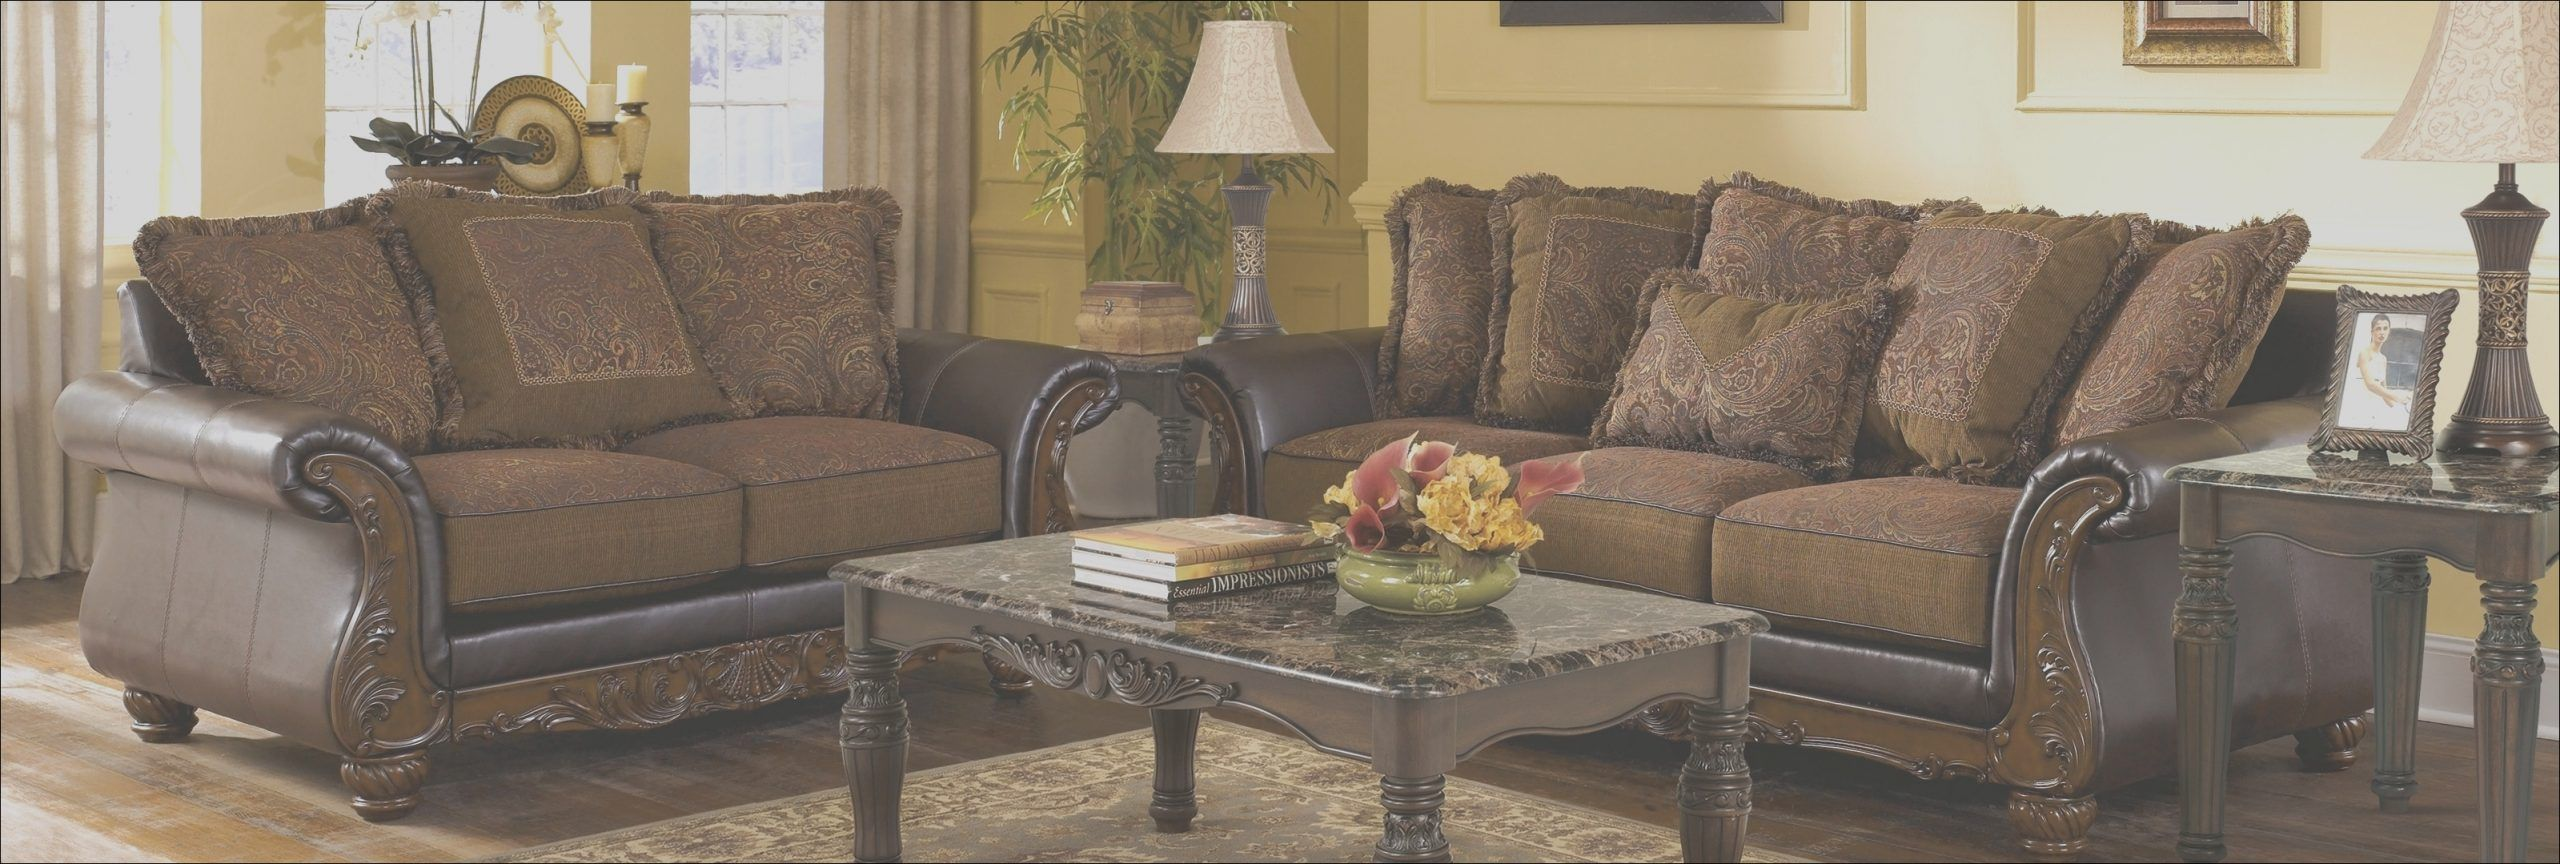 4 Excellent Drawing Room Furniture Catalogue Stock in 4